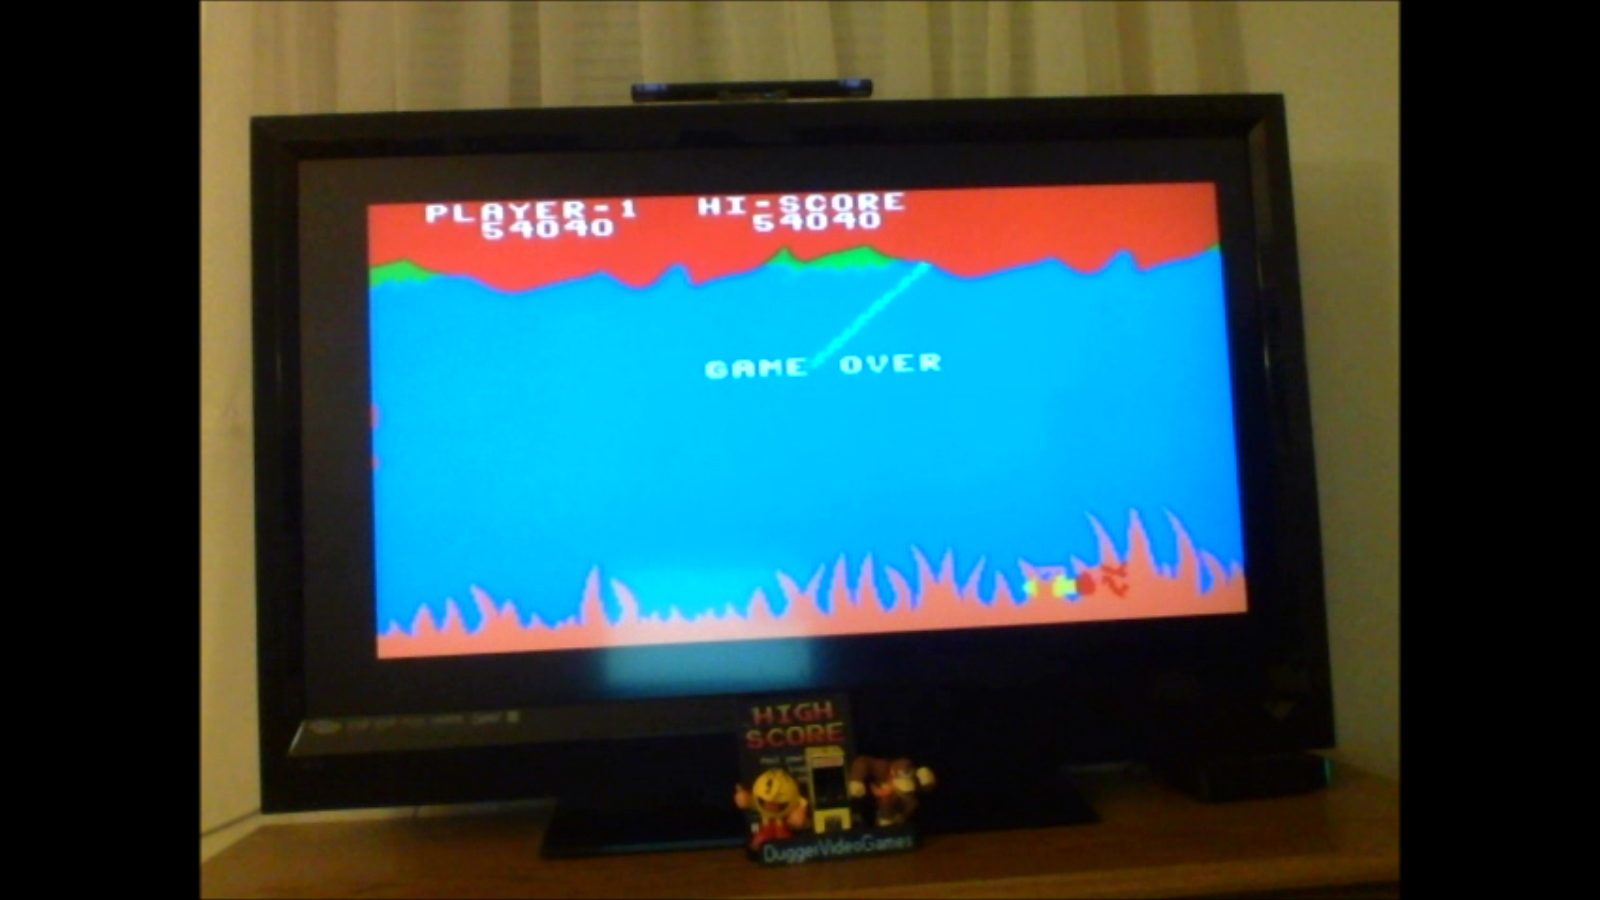 DuggerVideoGames: Jungle Hunt: Skill 1 (Colecovision Emulated) 54,040 points on 2017-02-10 00:05:33